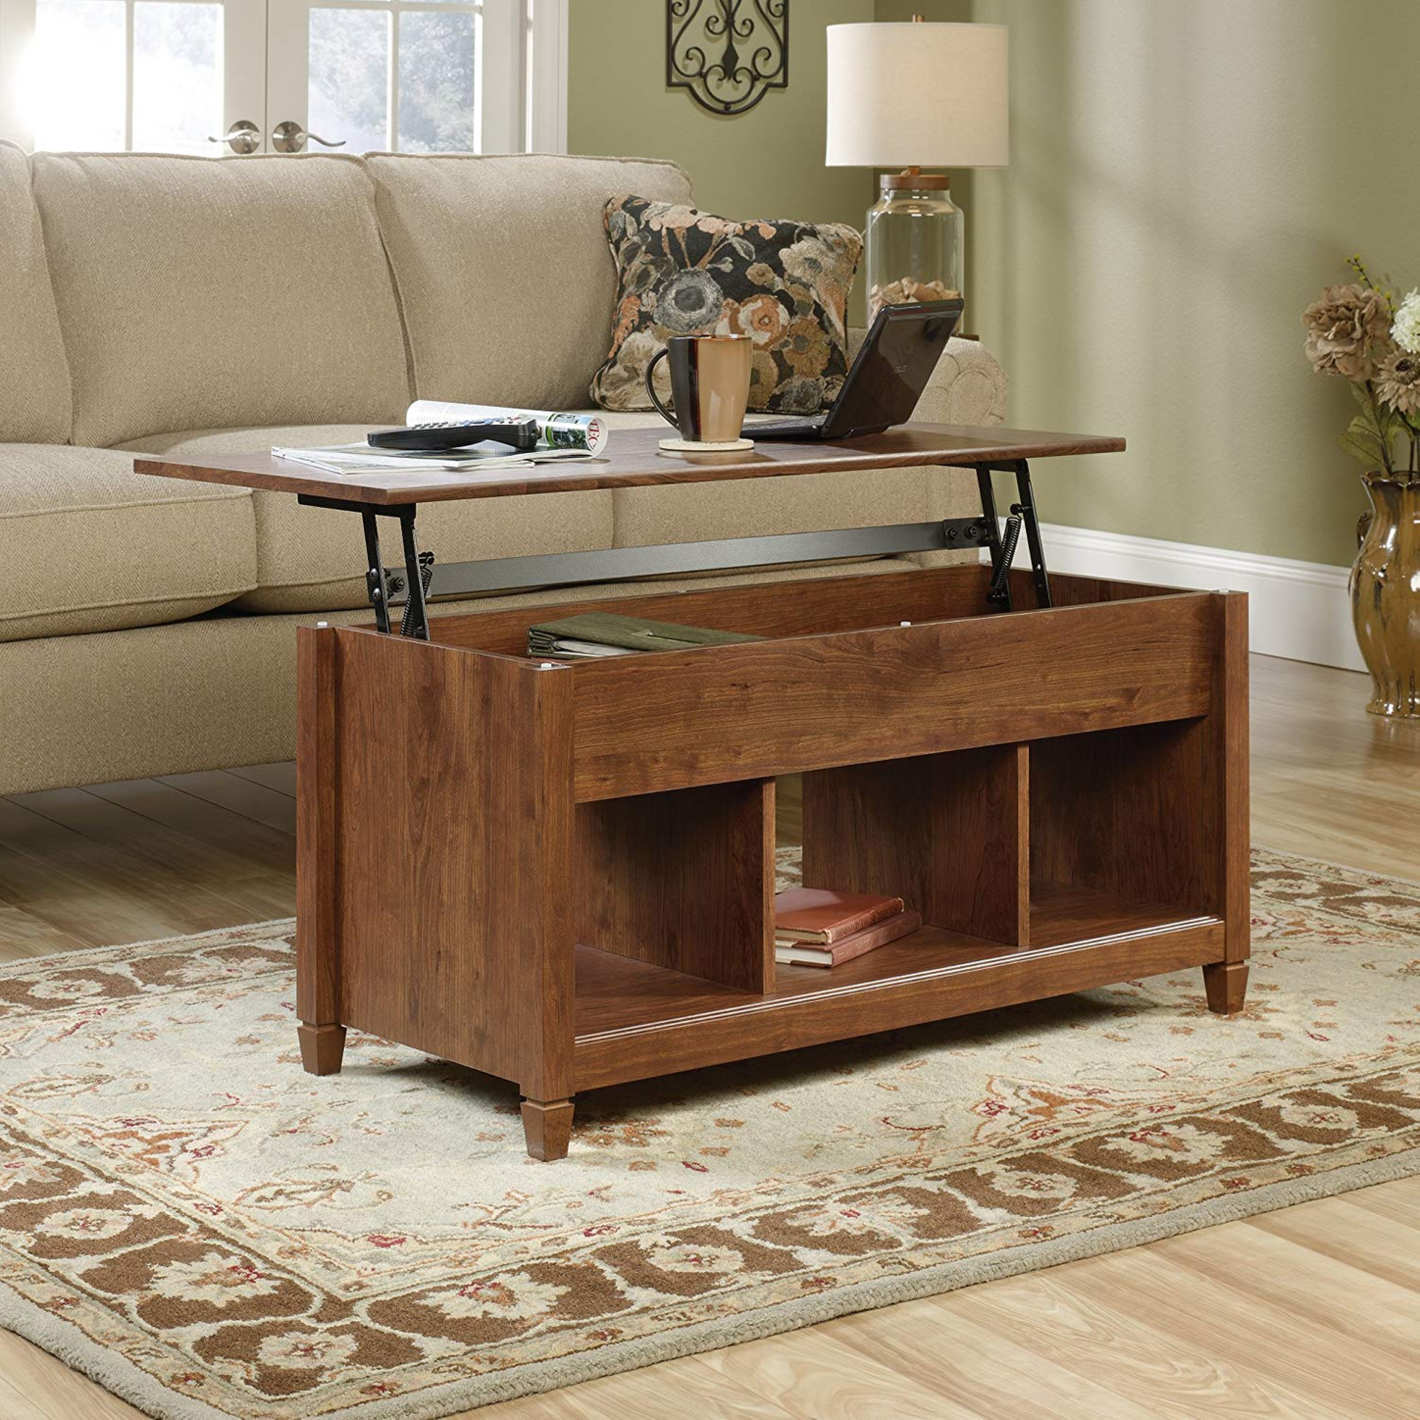 best coffee tables under lift top table nocrop sauder furniture end auburn cherry home hardware patio rustic country brown leather sectional sofa liberty collection narrow console